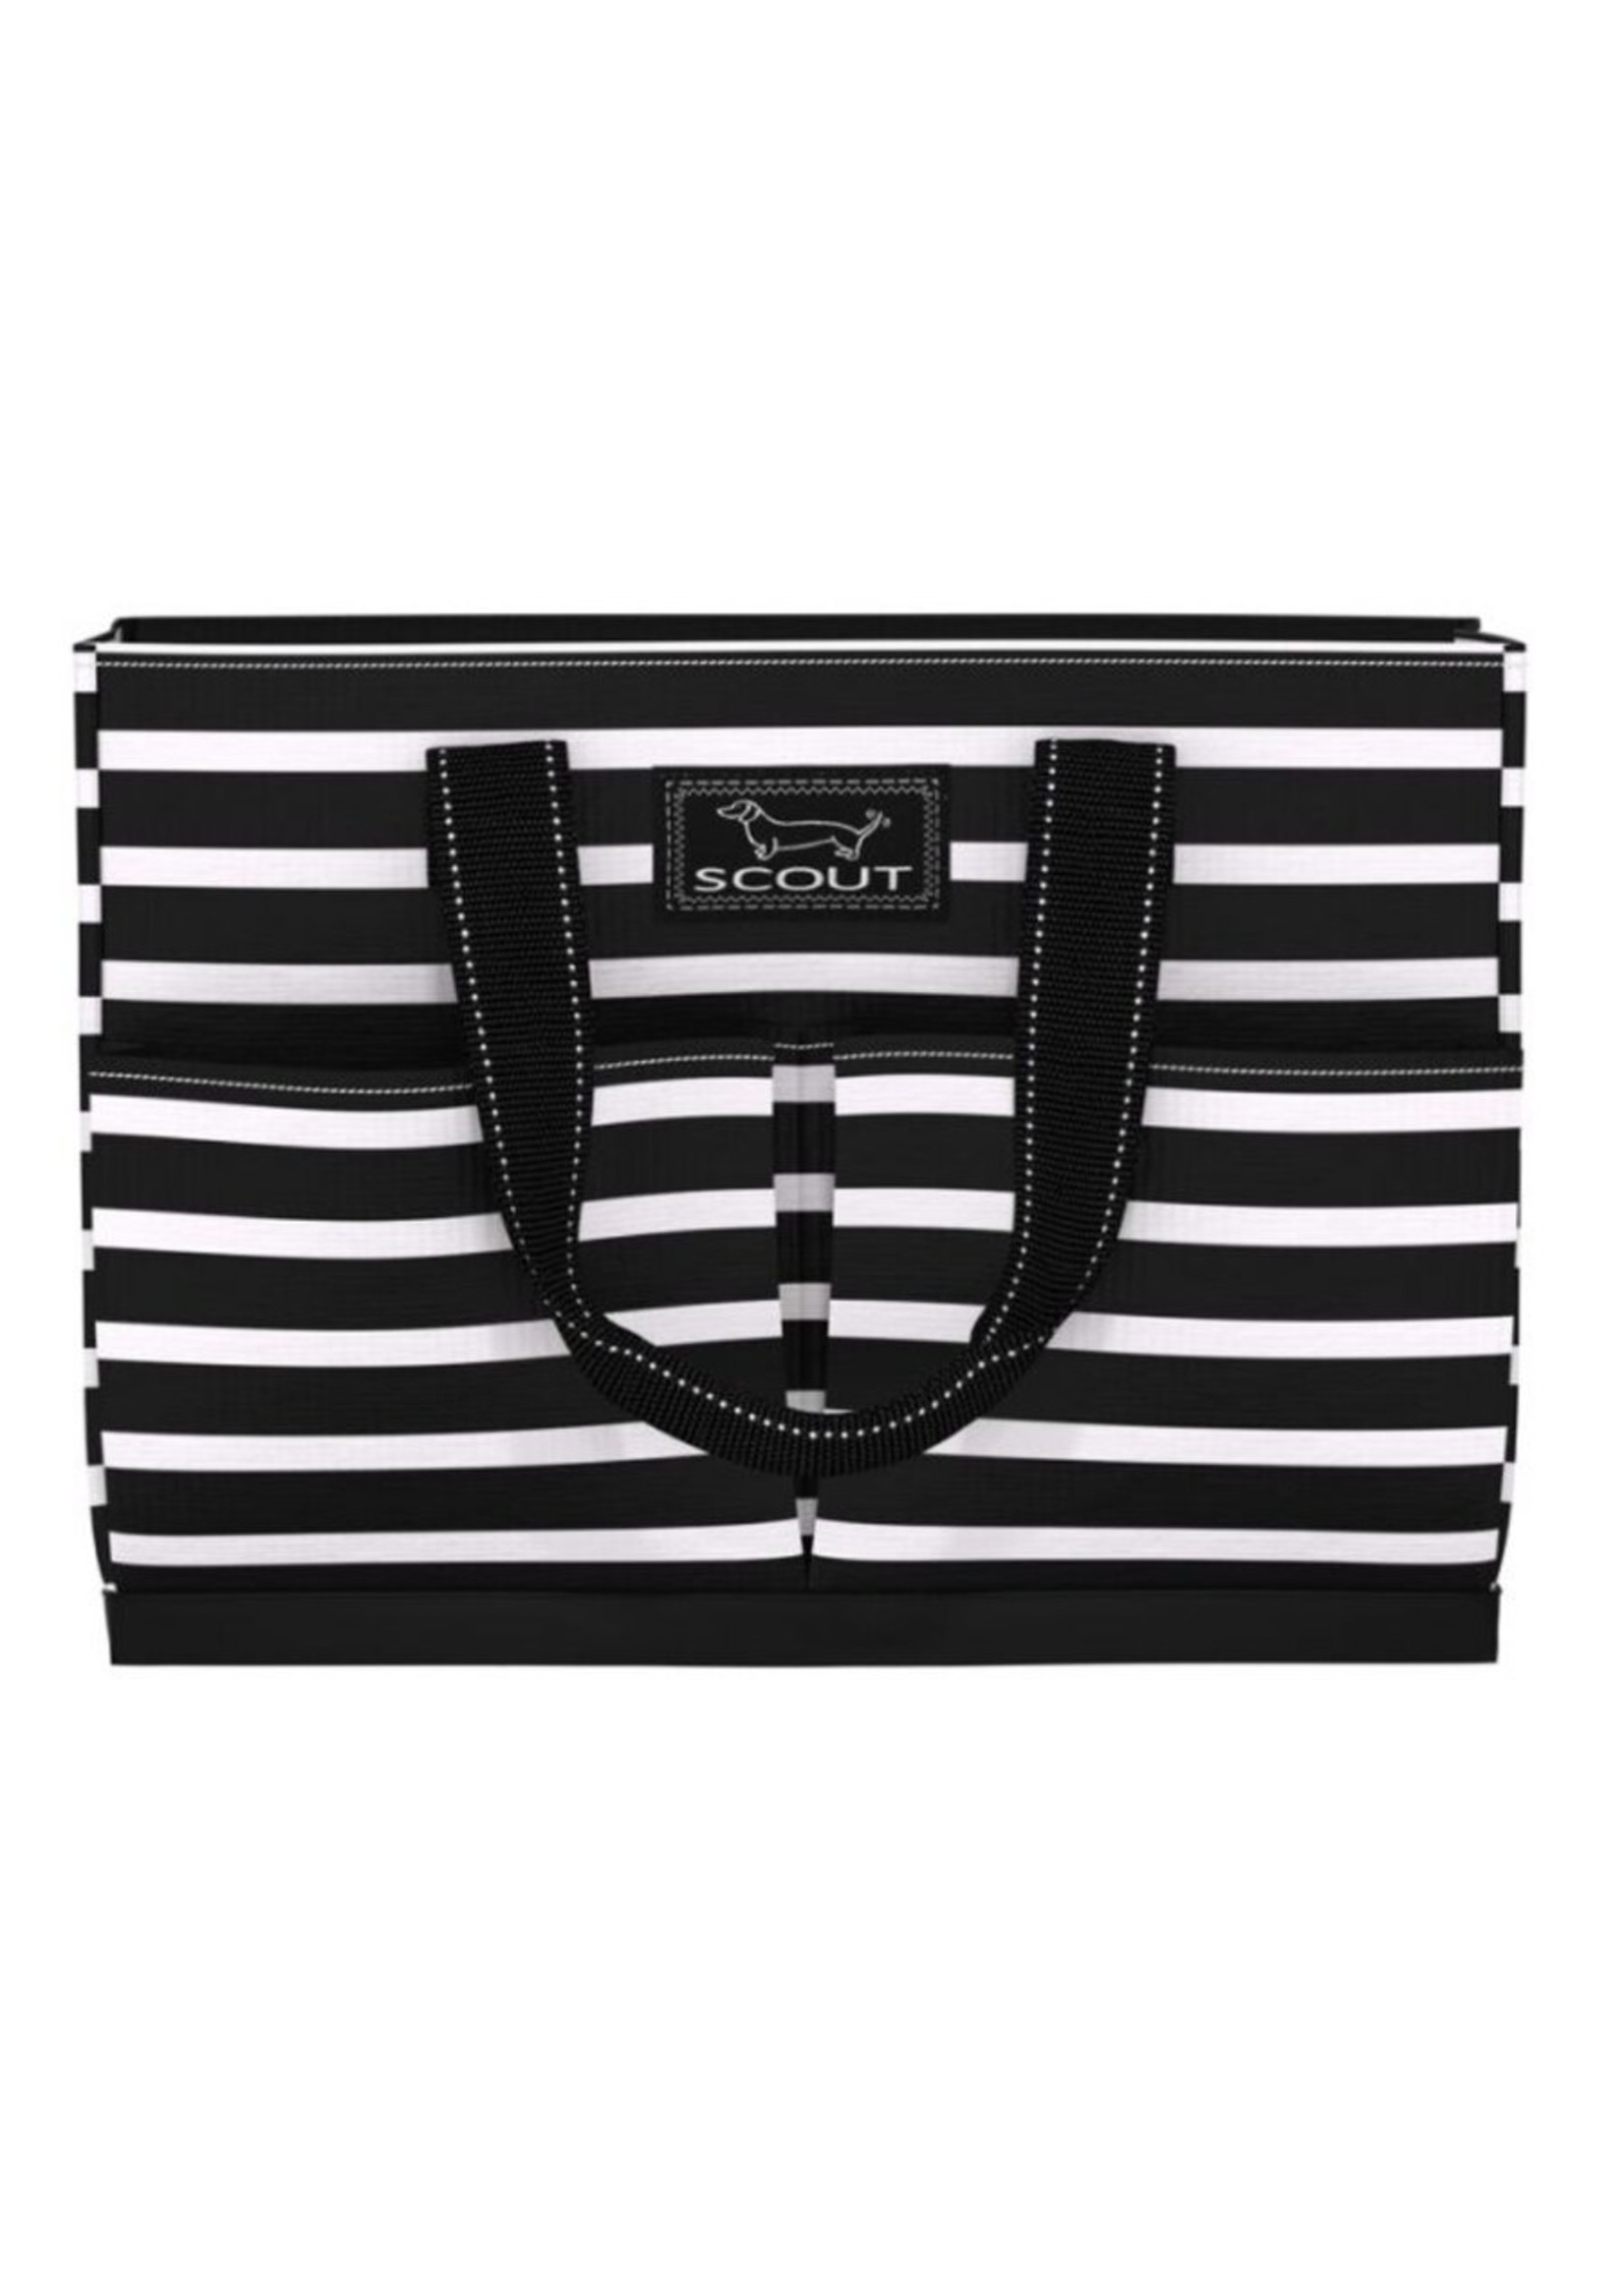 scout by bungalow Scout Uptown Girl Fleetwood Black